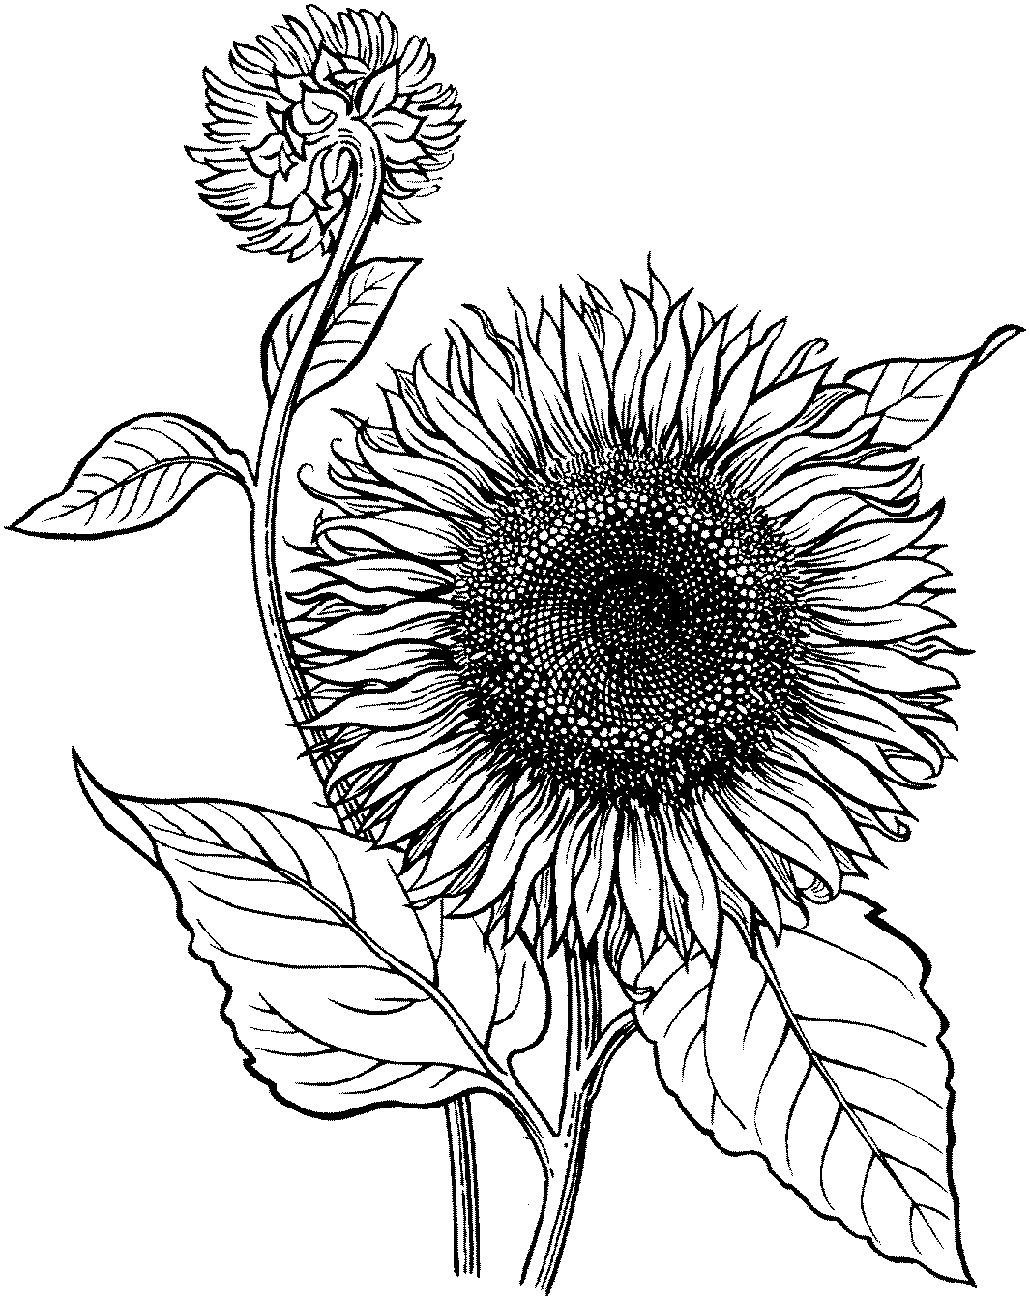 Sunflower Coloring Page For Adults